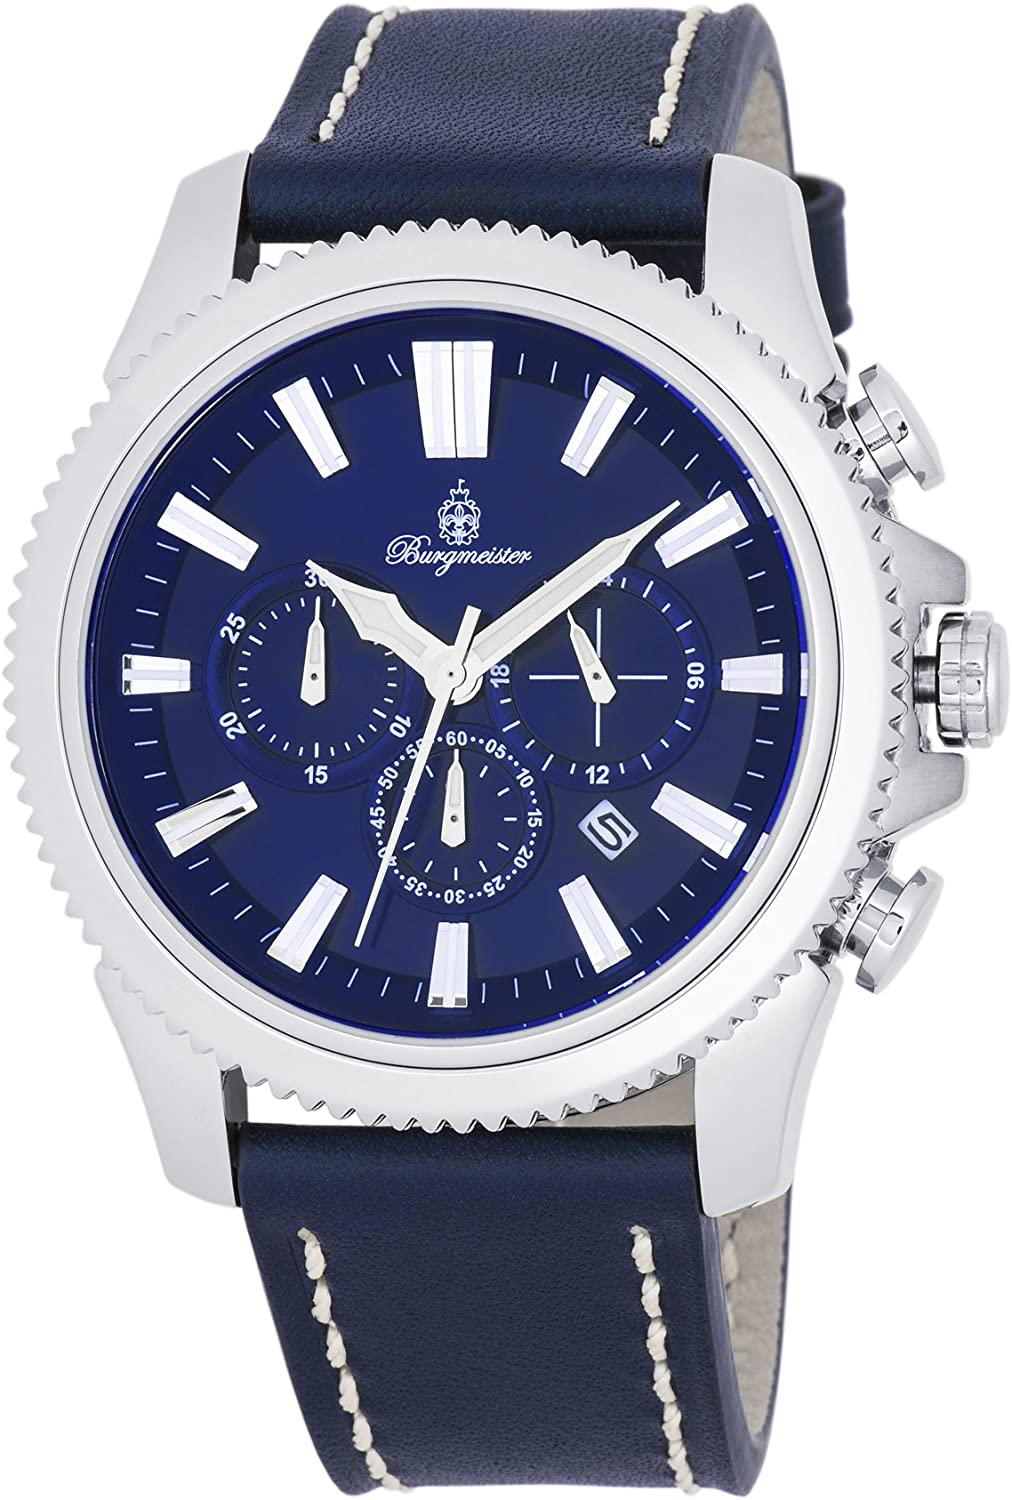 Burgmeister Men s Stainless Steel Quartz Watch with Leather Calfskin Strap, Blue, 23 Model BMT03-133